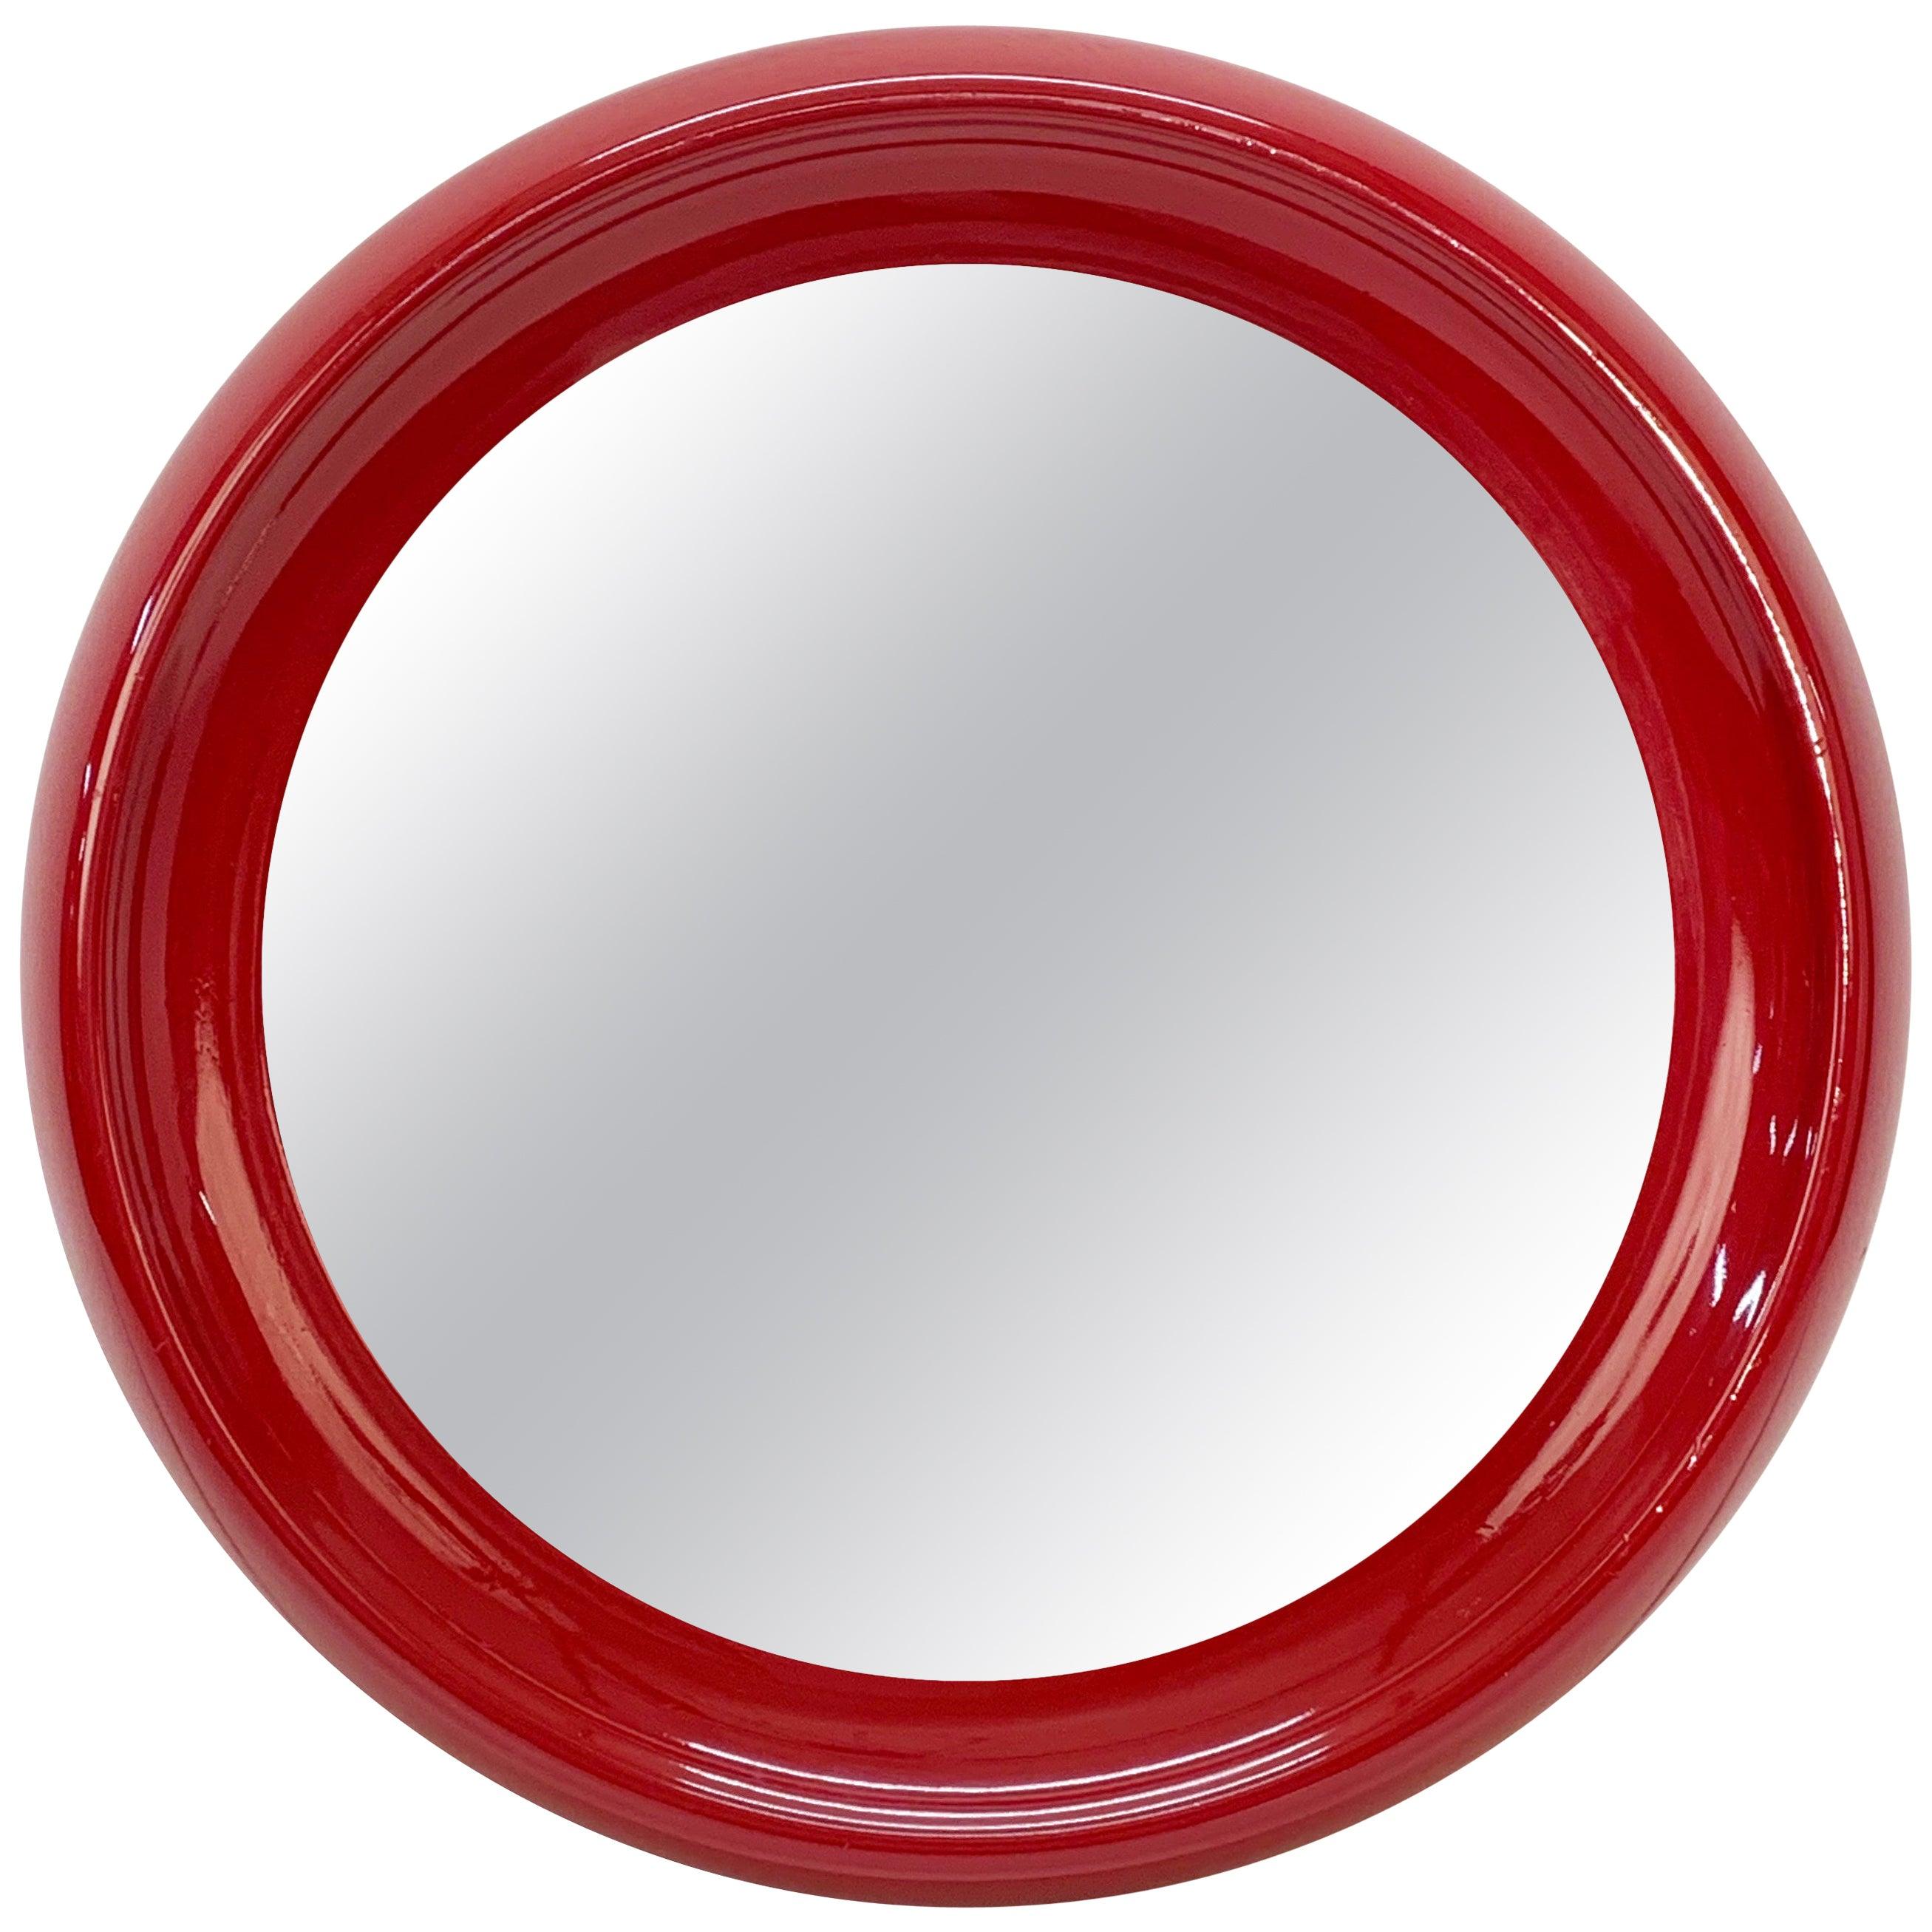 Midcentury Round Italian Mirror with Red Lacquered Resin Frame, 1970s